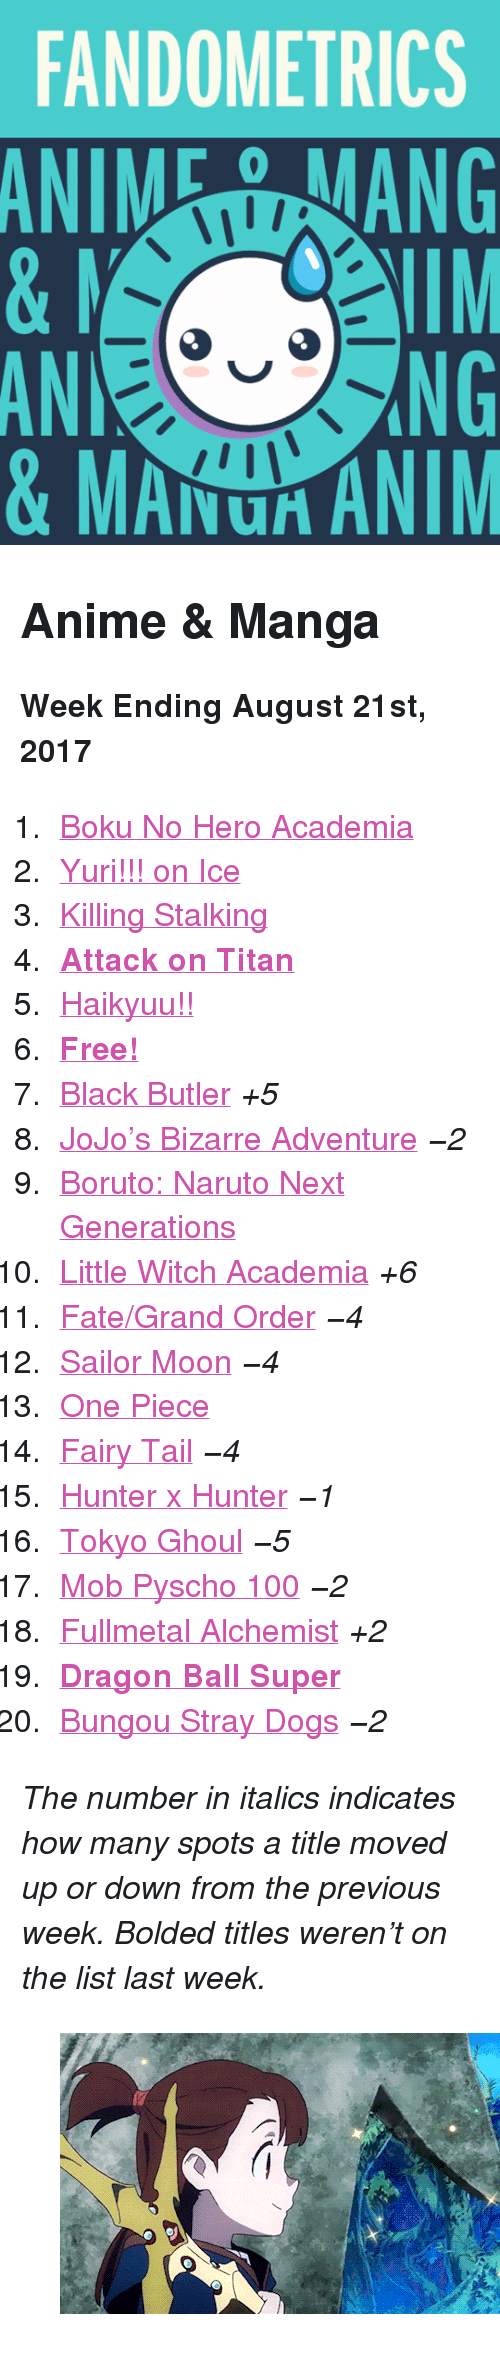 "Dragon Ball Super: FANDOMETRICS  ANIEANG  AN  0  NG  & MAU ANIM <h2>Anime &amp; Manga</h2><p><b>Week Ending August 21st, 2017</b></p><ol><li><a href=""http://tumblr.co/61388xBGm"">Boku No Hero Academia</a></li><li><a href=""http://tumblr.co/61398xBGW"">Yuri!!! on Ice</a></li><li><a href=""http://tumblr.co/61318xBGU"">Killing Stalking</a></li><li><a href=""http://tumblr.co/61338xBGS""><b>Attack on Titan</b></a></li><li><a href=""http://tumblr.co/61348xBGs!!"">Haikyuu!!</a></li><li><a href=""http://tumblr.co/61398xBGx!""><b>Free!</b></a></li><li><a href=""http://tumblr.co/61308xBGI"">Black Butler</a> <i>+5</i></li><li><a href=""http://tumblr.co/61338xBGF"">JoJo&rsquo;s Bizarre Adventure</a> <i>−2</i></li><li><a href=""http://tumblr.co/61358xBGN"">Boruto: Naruto Next Generations</a></li><li><a href=""http://tumblr.co/61368xBG4"">Little Witch Academia</a> <i>+6</i></li><li><a href=""http://tumblr.co/61378xBGf"">Fate/Grand Order</a> <i>−4</i></li><li><a href=""http://tumblr.co/61388xBGA"">Sailor Moon</a> <i>−4</i></li><li><a href=""http://tumblr.co/61398xBG7"">One Piece</a></li><li><a href=""http://tumblr.co/61308xBGC"">Fairy Tail</a> <i>−4</i></li><li><a href=""http://tumblr.co/61318xBGh"">Hunter x Hunter</a> <i>−1</i></li><li><a href=""http://tumblr.co/61328xBH6"">Tokyo Ghoul</a> <i>−5</i></li><li><a href=""http://tumblr.co/61338xBHB"">Mob Pyscho 100</a> <i>−2</i></li><li><a href=""http://tumblr.co/61348xBH8"">Fullmetal Alchemist</a> <i>+2</i></li><li><a href=""http://tumblr.co/61358xBHD""><b>Dragon Ball Super</b></a></li><li><a href=""http://tumblr.co/61378xBH1"">Bungou Stray Dogs</a> <i>−2</i></li></ol><p><i>The number in italics indicates how many spots a title moved up or down from the previous week. Bolded titles weren't on the list last week.</i></p><figure class=""tmblr-full"" data-orig-height=""281"" data-orig-width=""500"" data-tumblr-attribution=""mimi-pearlbaton:QzPcCSANtws8wS2CUs0HCA:ZVgZao2MsQBpH""><img src=""https://78.media.tumblr.com/9d8d5e1fe70dcf8620d4e6a63428d179/tumblr_orra0mMSdn1tr842yo2_r2_500.gif"" data-orig-height=""281"" data-orig-width=""500""/></figure>"